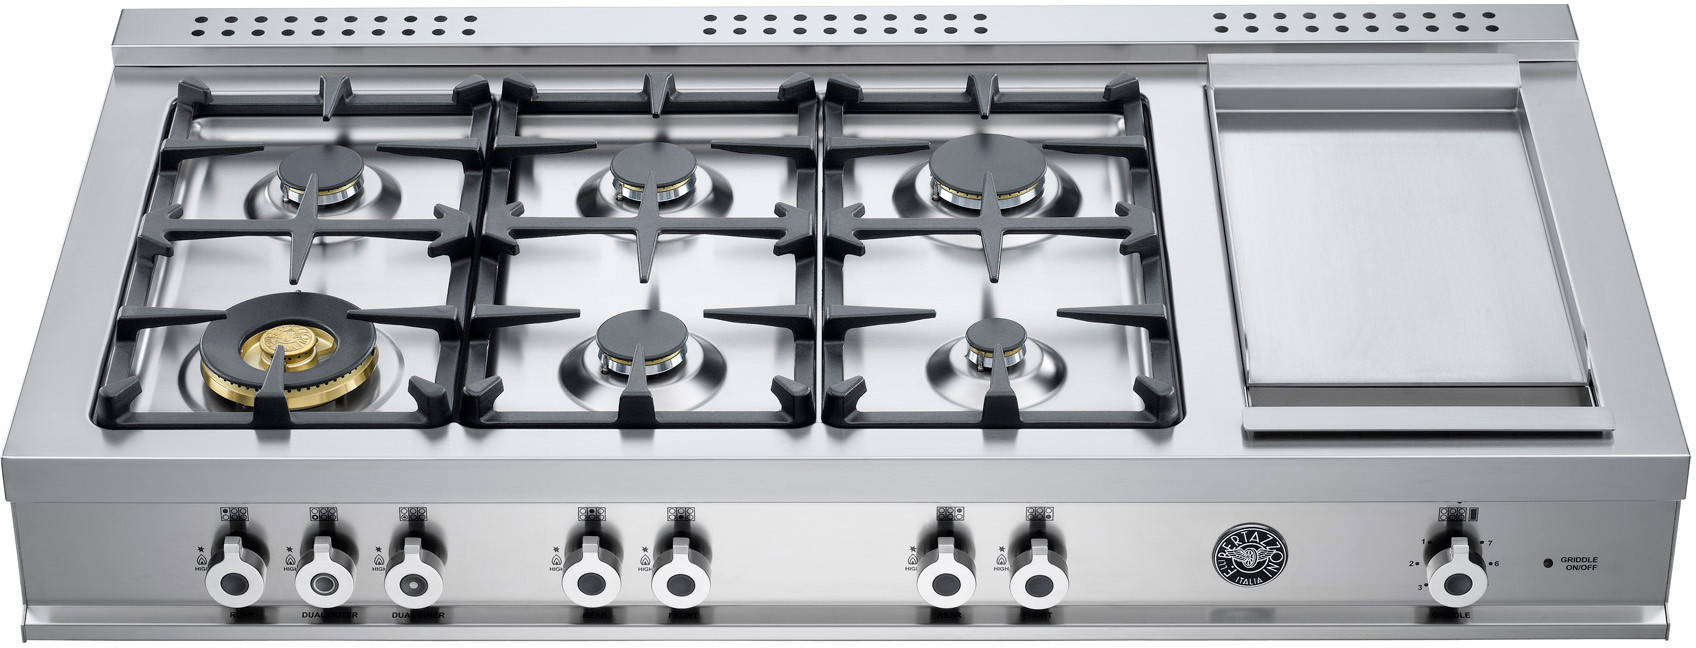 Bertazzoni Cb486g00x 48 Inch Pro Style Gas Rangetop With 6 Sealed Burners 18 000 Btu Br Burner Electric Griddle Continuous Grates And Island